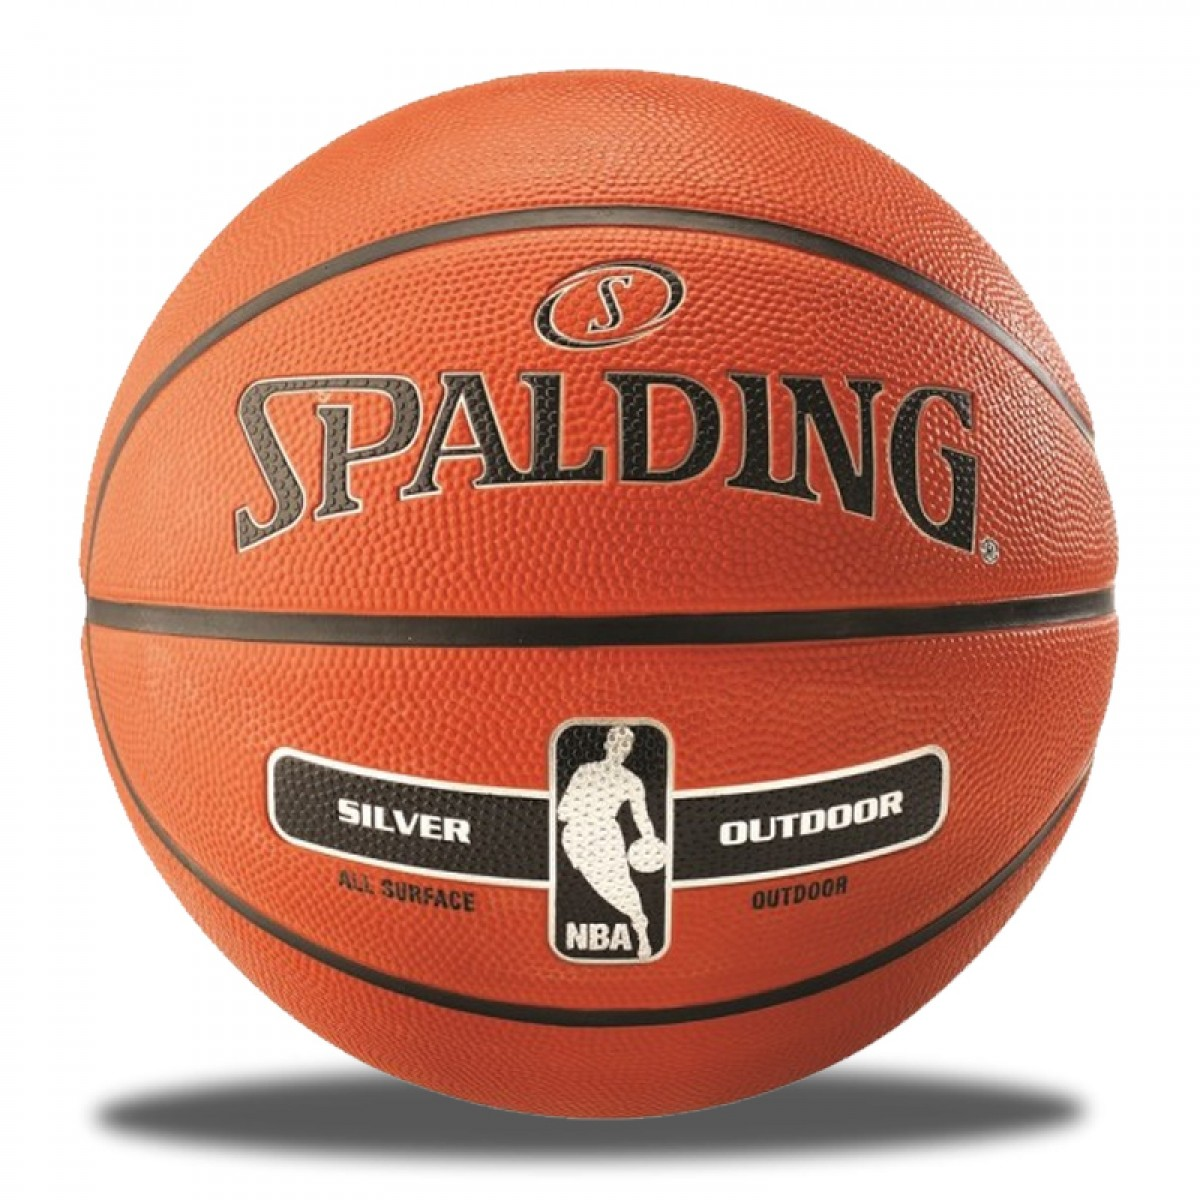 Spalding NBA Silver Outdoor Men